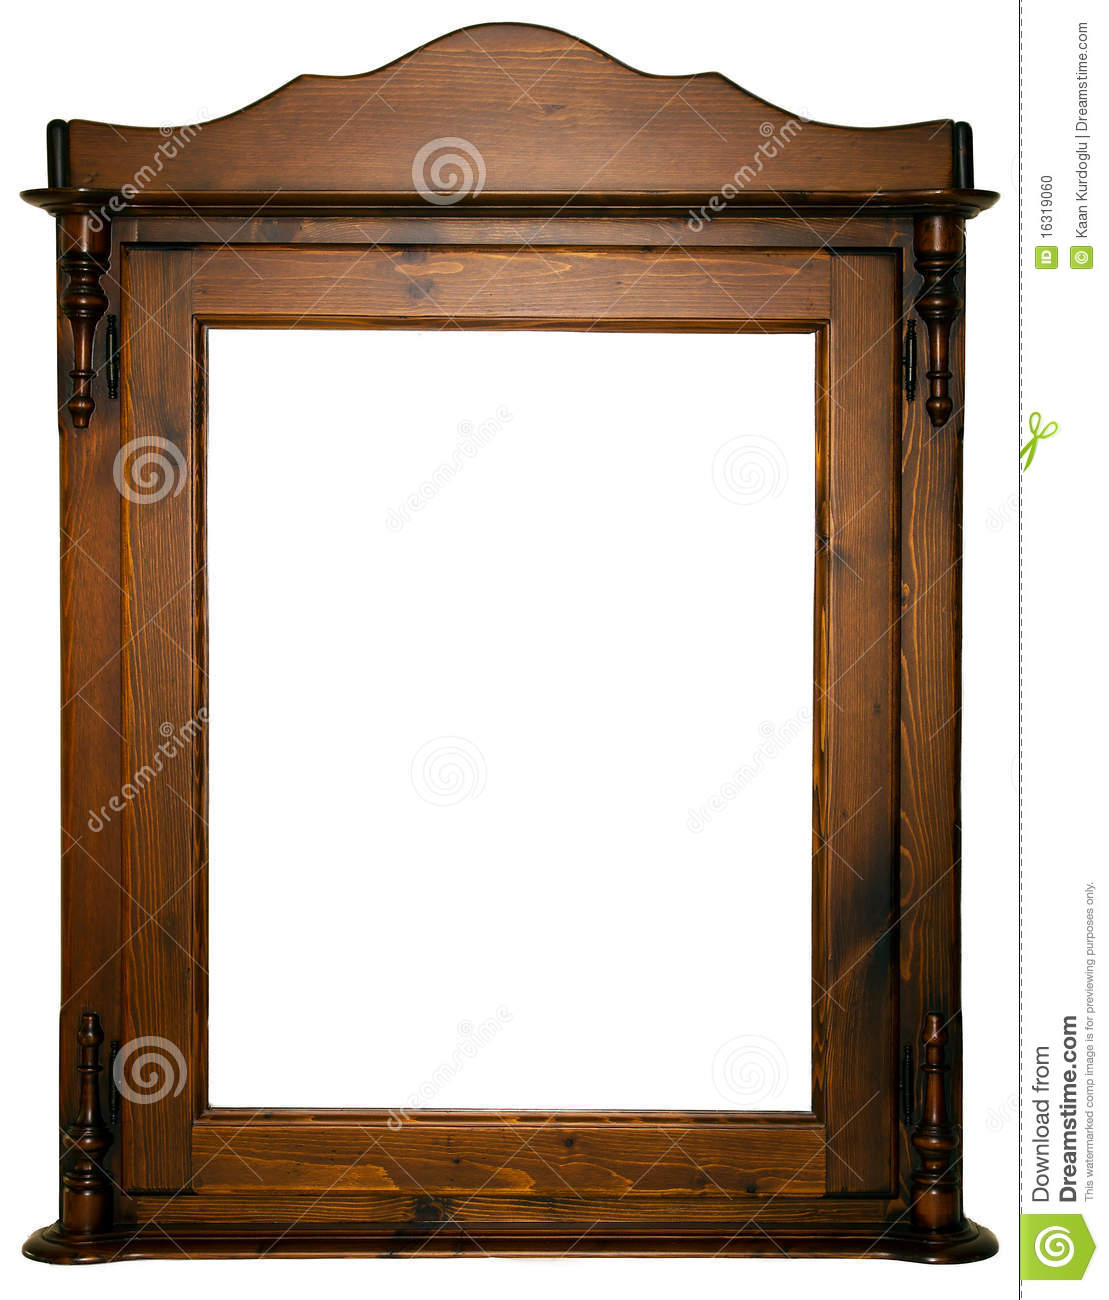 Large wooden frame stock photo. Image of furniture, retro - 16319060